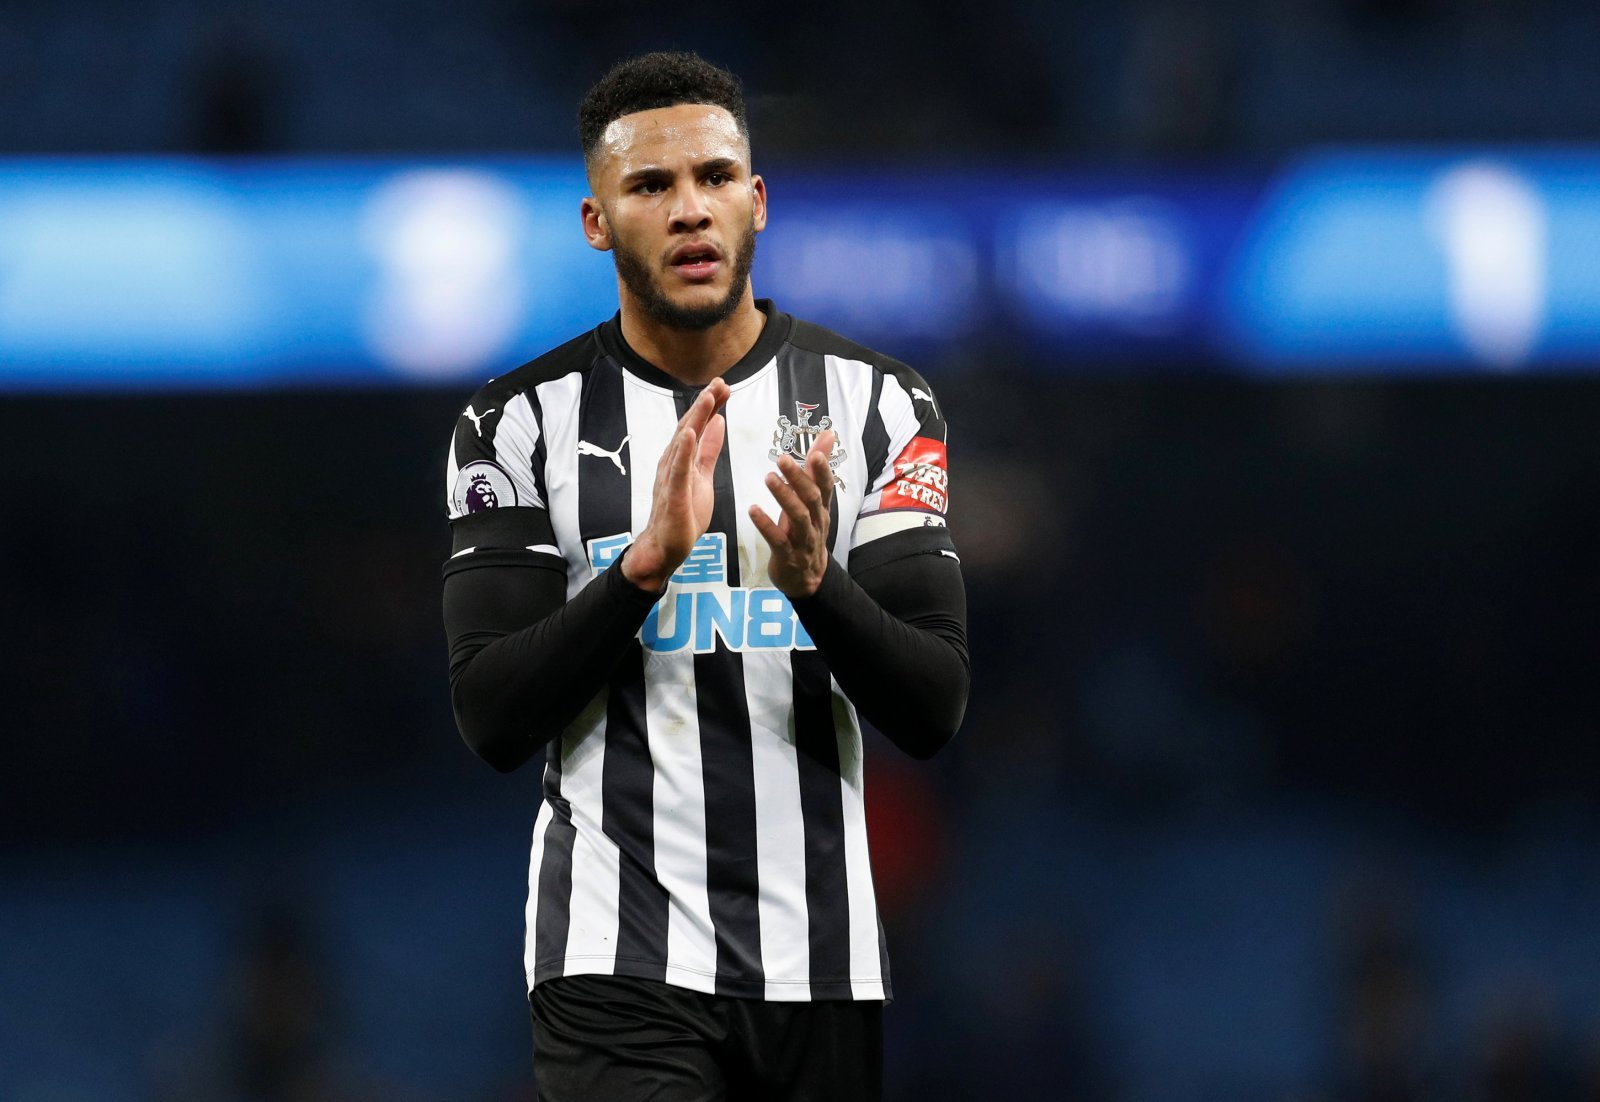 Newcastle's Jamaal Lascelles being watched by scouts